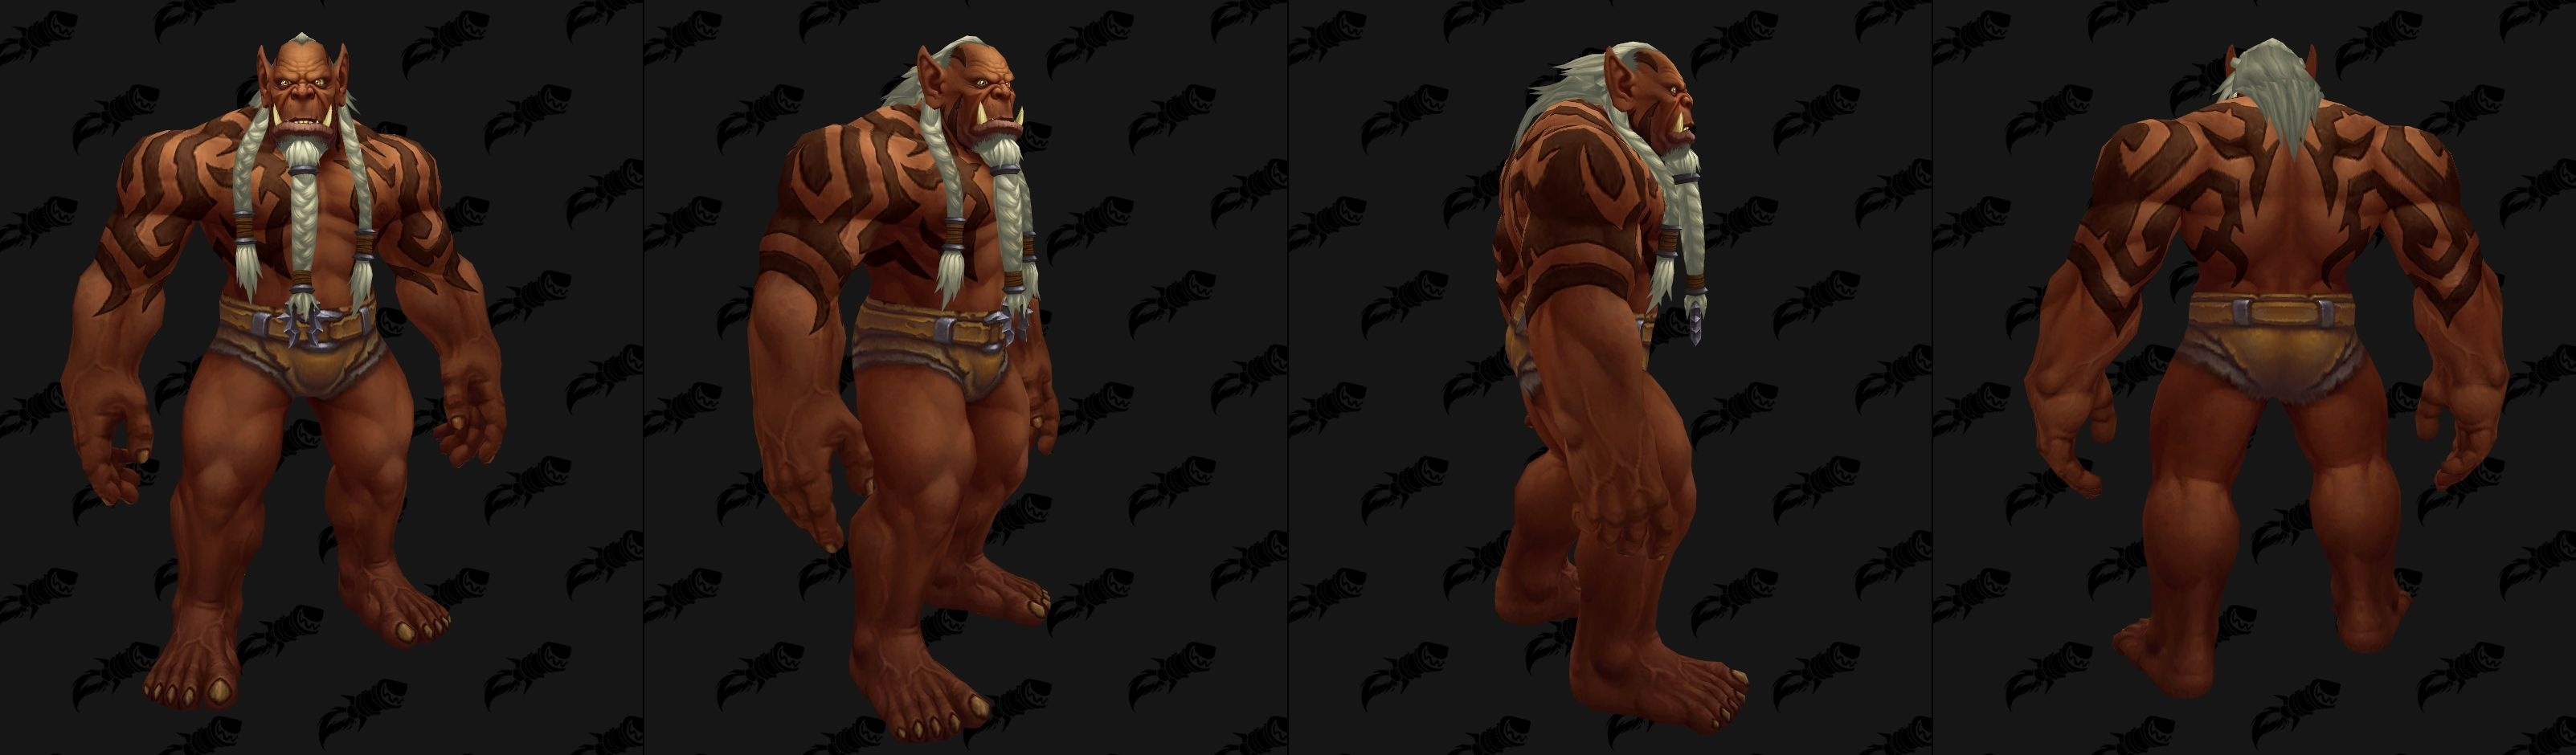 WoW Upright Orcs brown